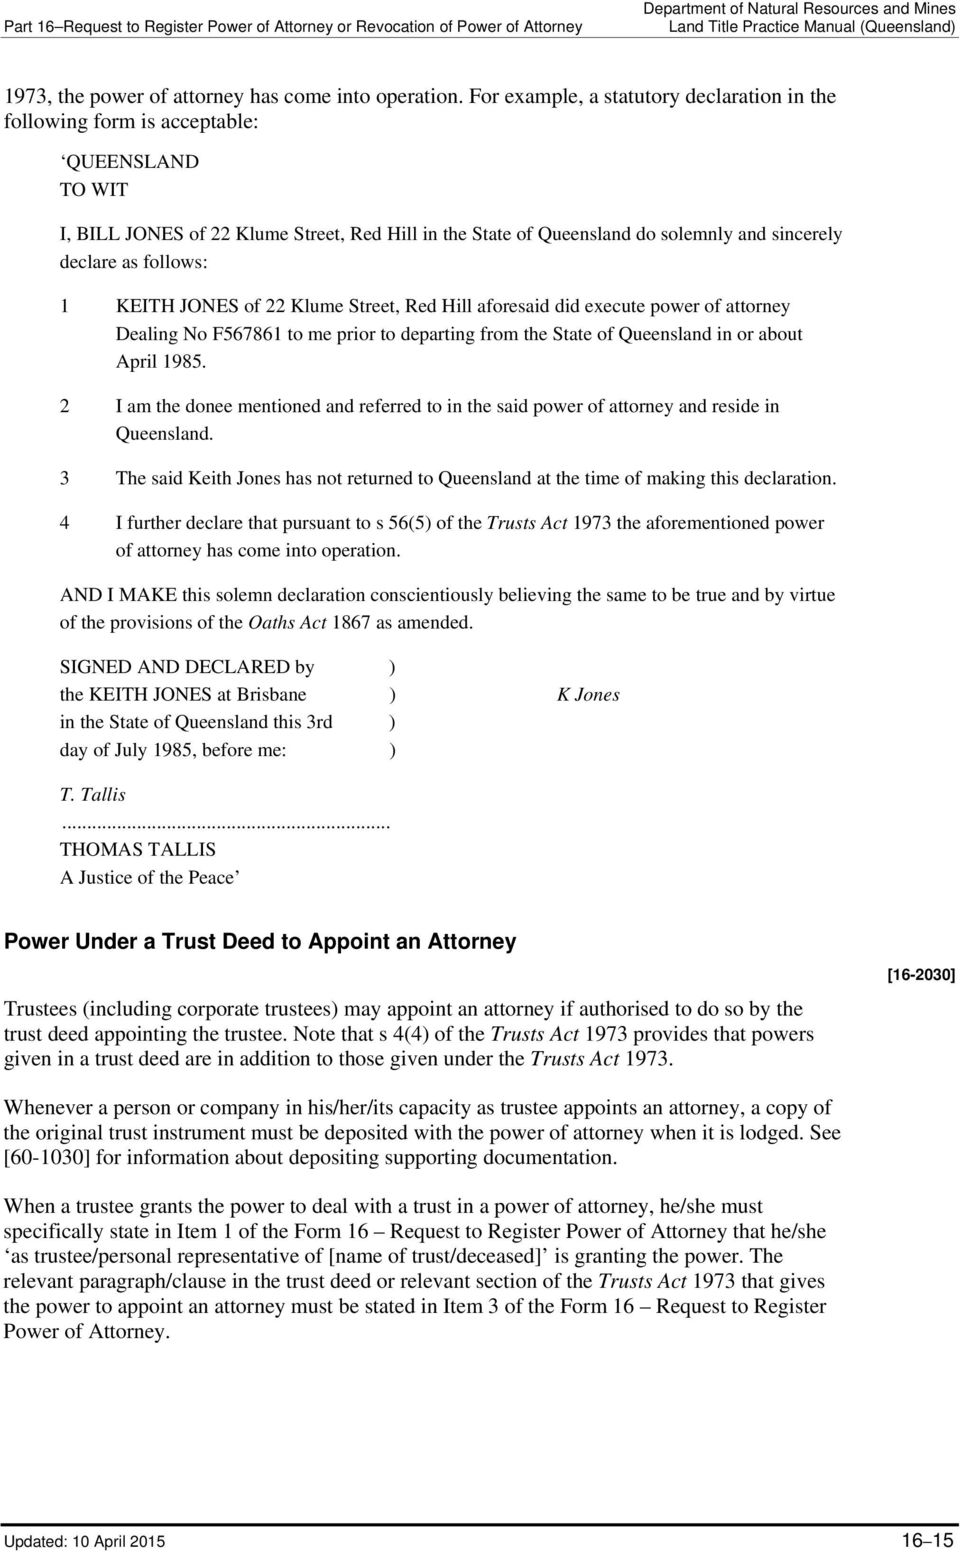 follows: 1 KEITH JONES of 22 Klume Street, Red Hill aforesaid did execute power of attorney Dealing No F567861 to me prior to departing from the State of Queensland in or about April 1985.